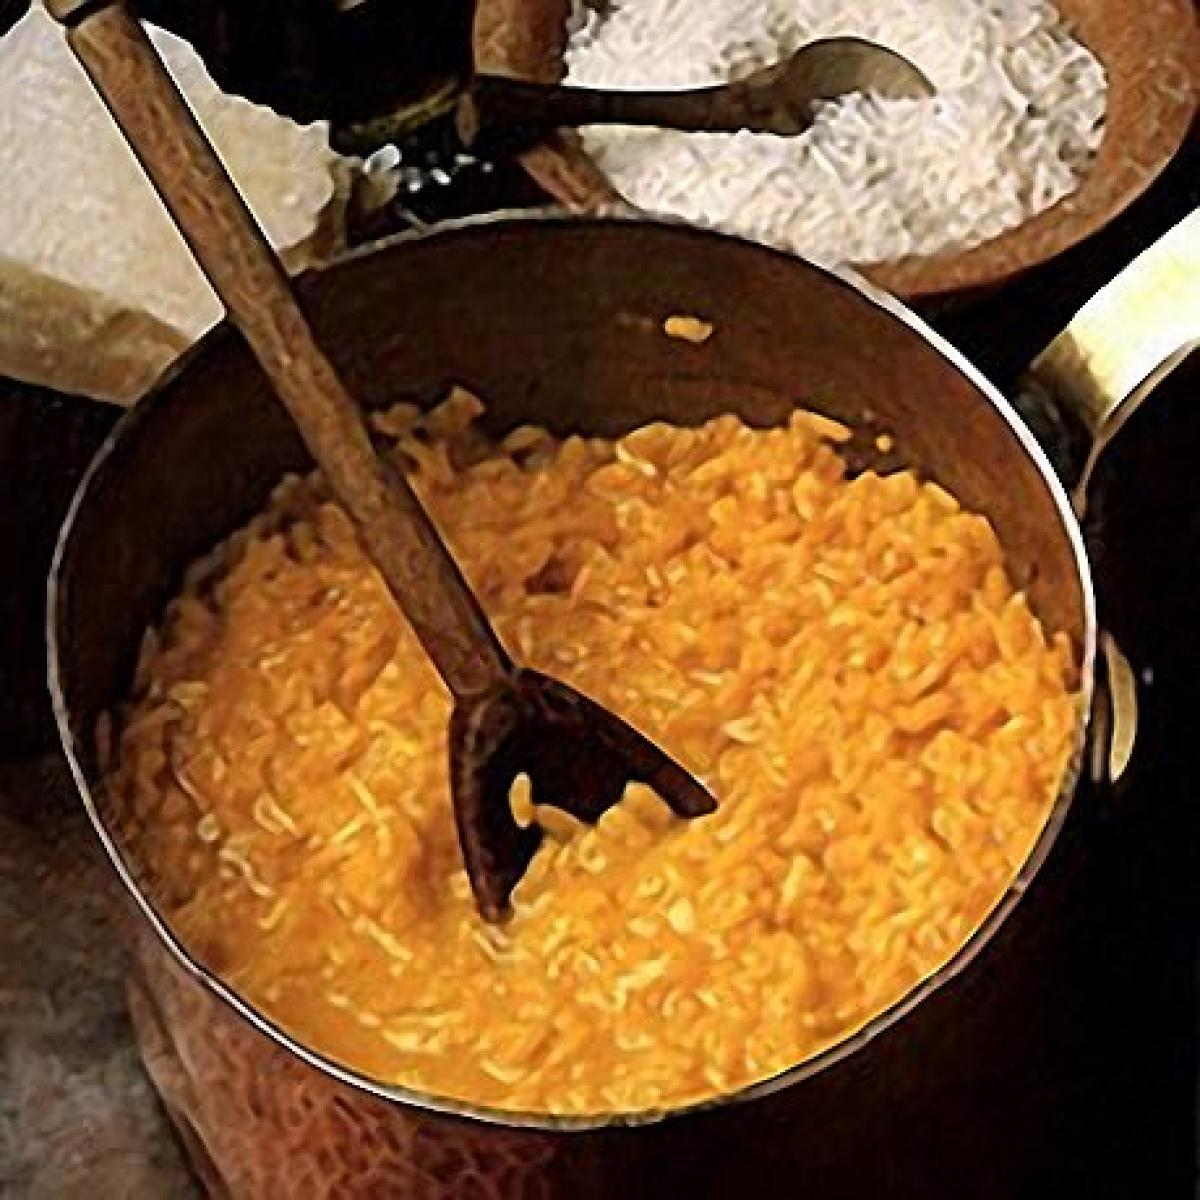 A picture of Delia's Cheats' Risotto Milanese recipe